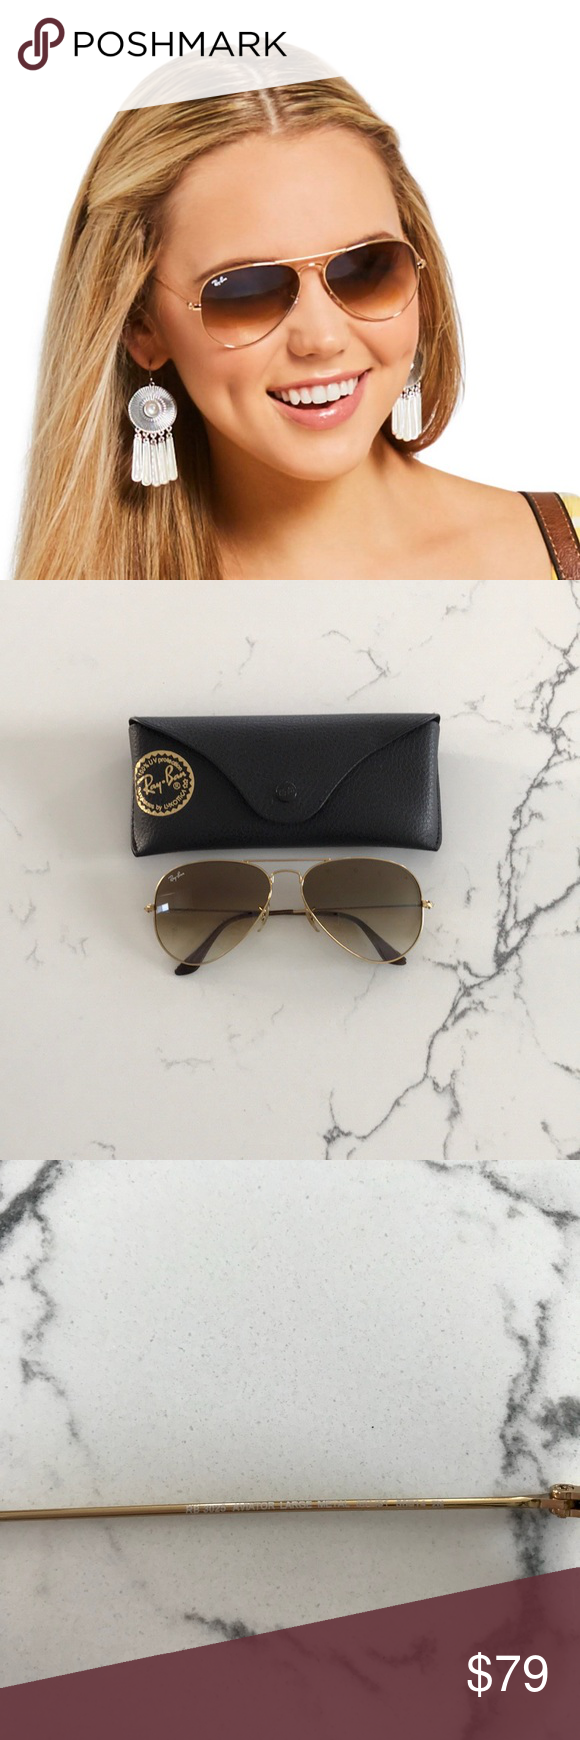 91070d8bae Ray-Ban Aviator Sunglasses - Gold Light Brown Ray-Ban RB3025-001 51 Aviator  Large Metal Sunglasses - Gold Frame Light Brown Gradient Lens - 58mm In  very ...